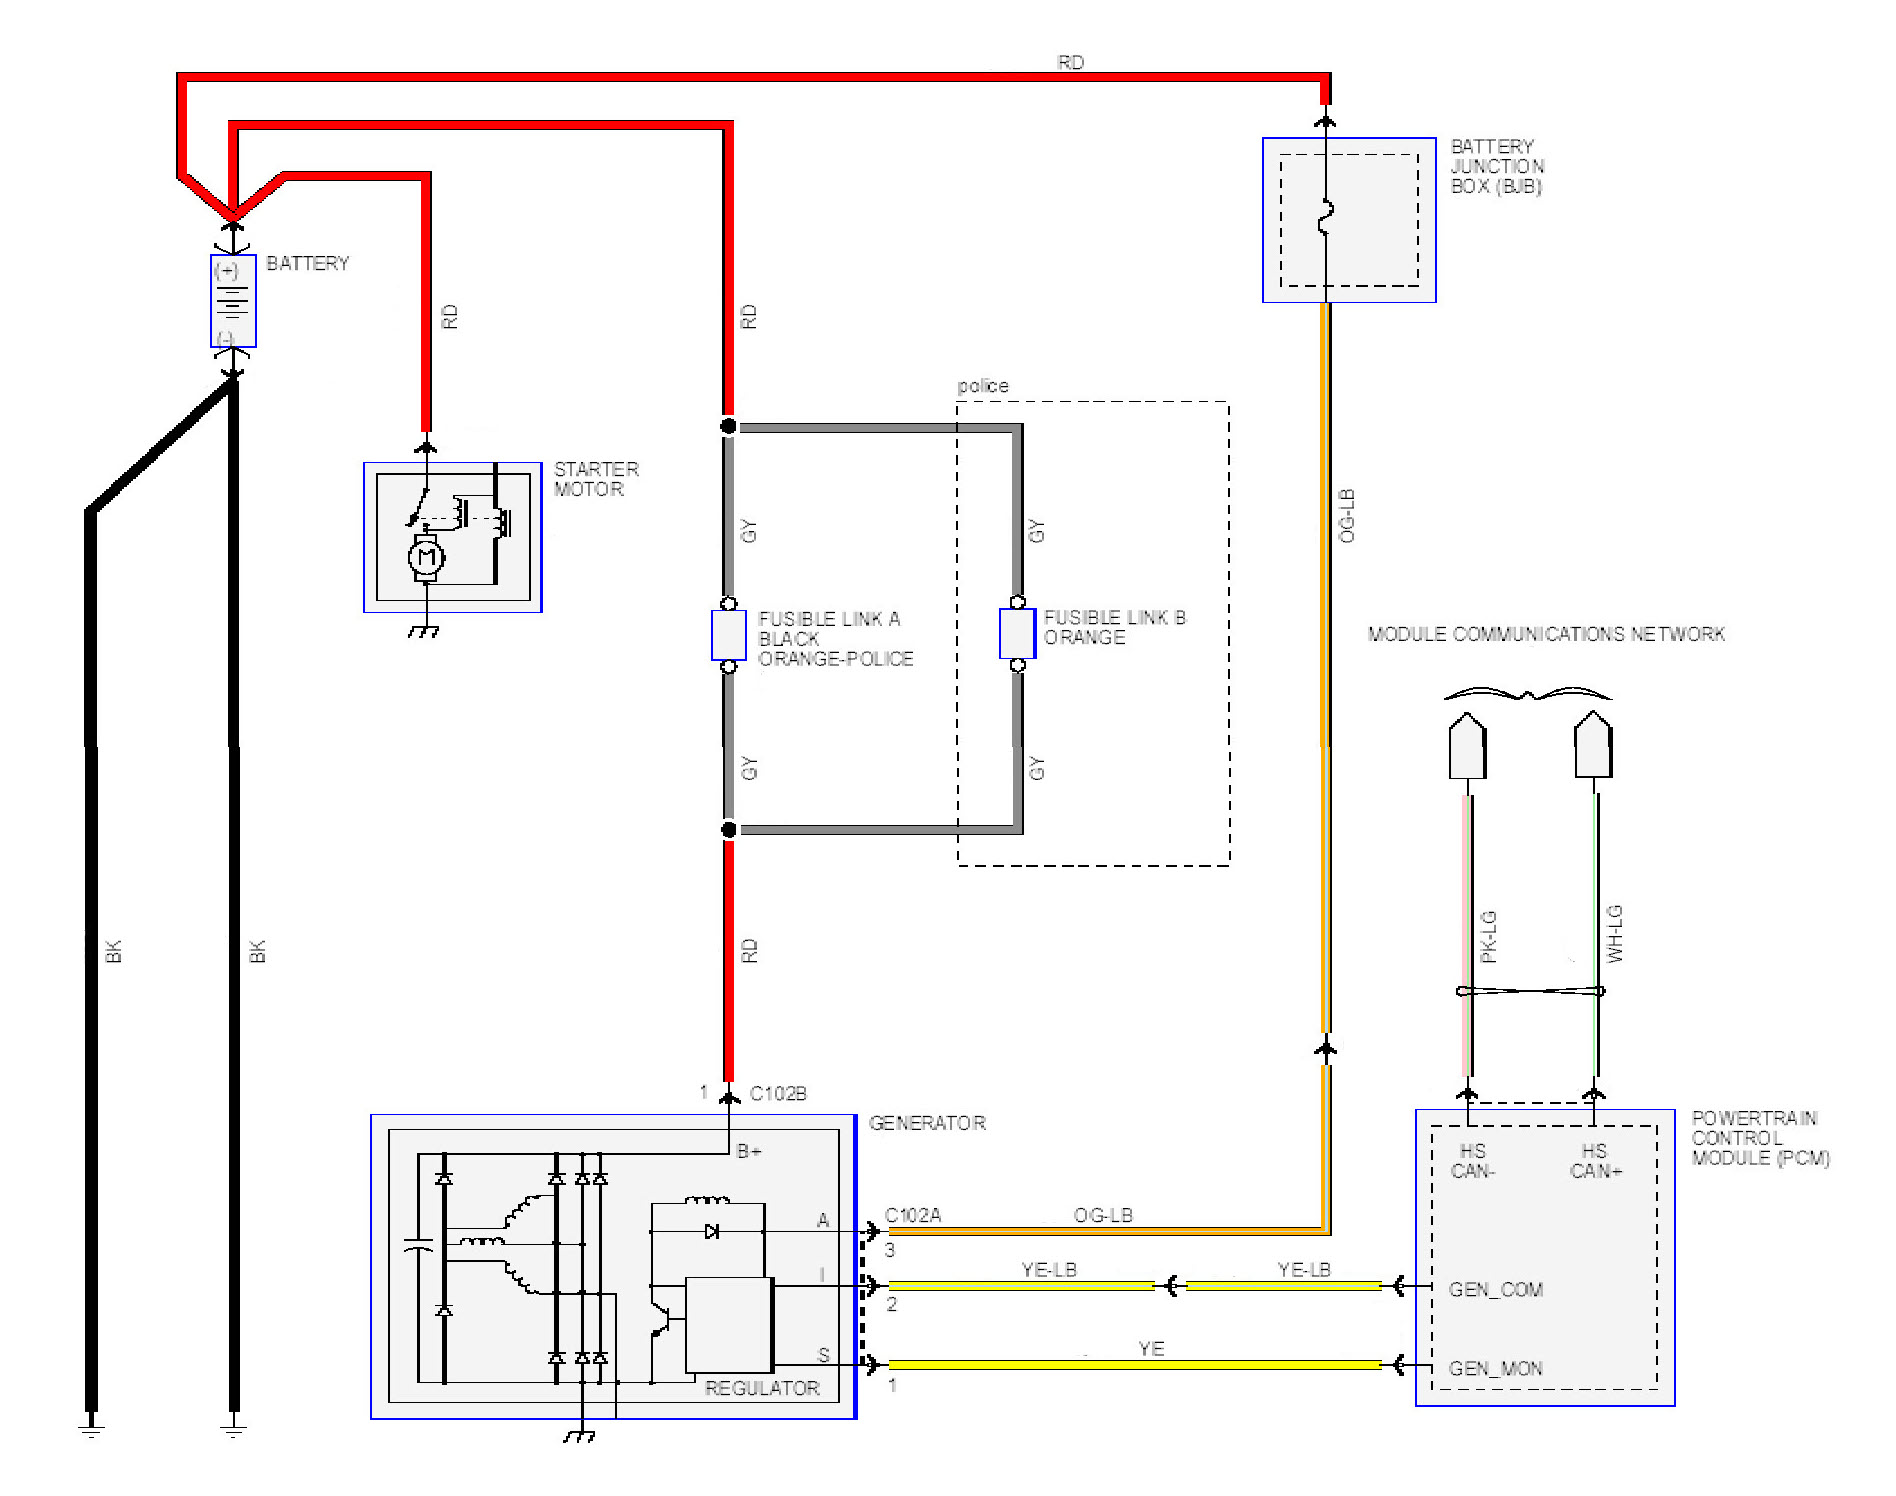 10crownviccharge ford crown victoria alternator wiring diagrams charging alternator wiring diagram at gsmx.co